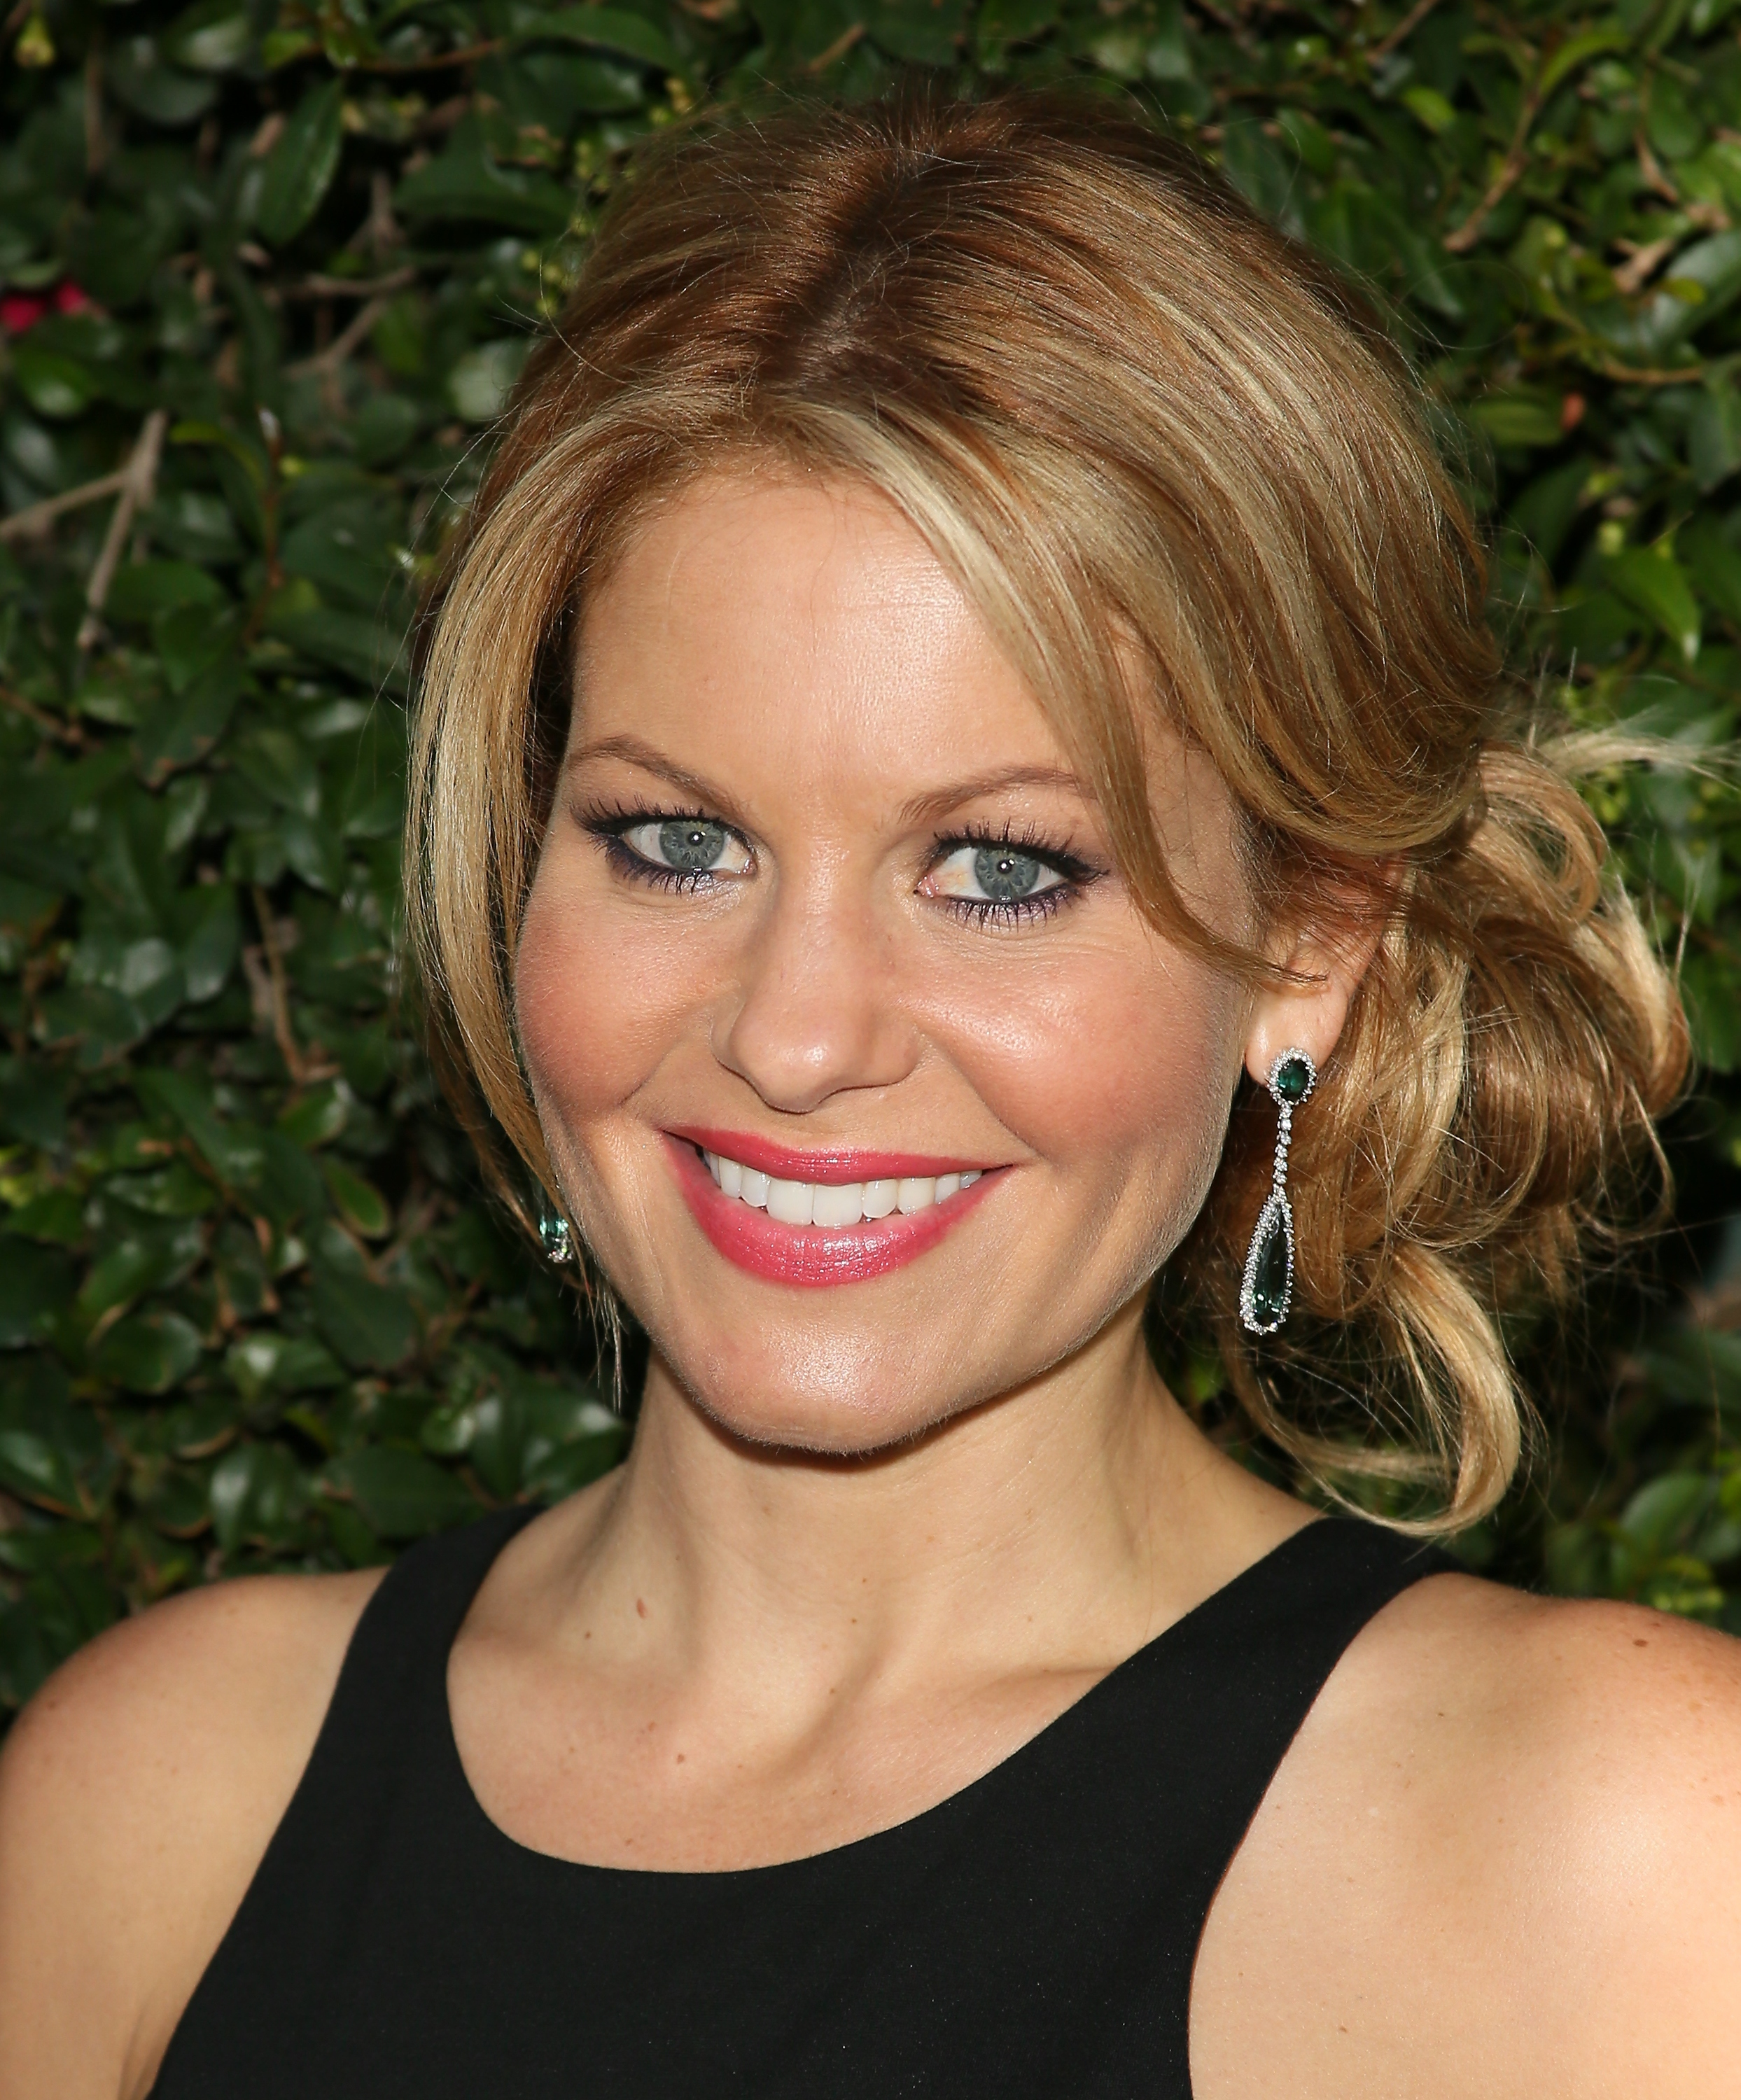 Candace Cameron Bure attends the Summer TCA Tour - Hallmark Channel and Hallmark Movies And Mysteries on July 29, 2015 in Beverly Hills, California.